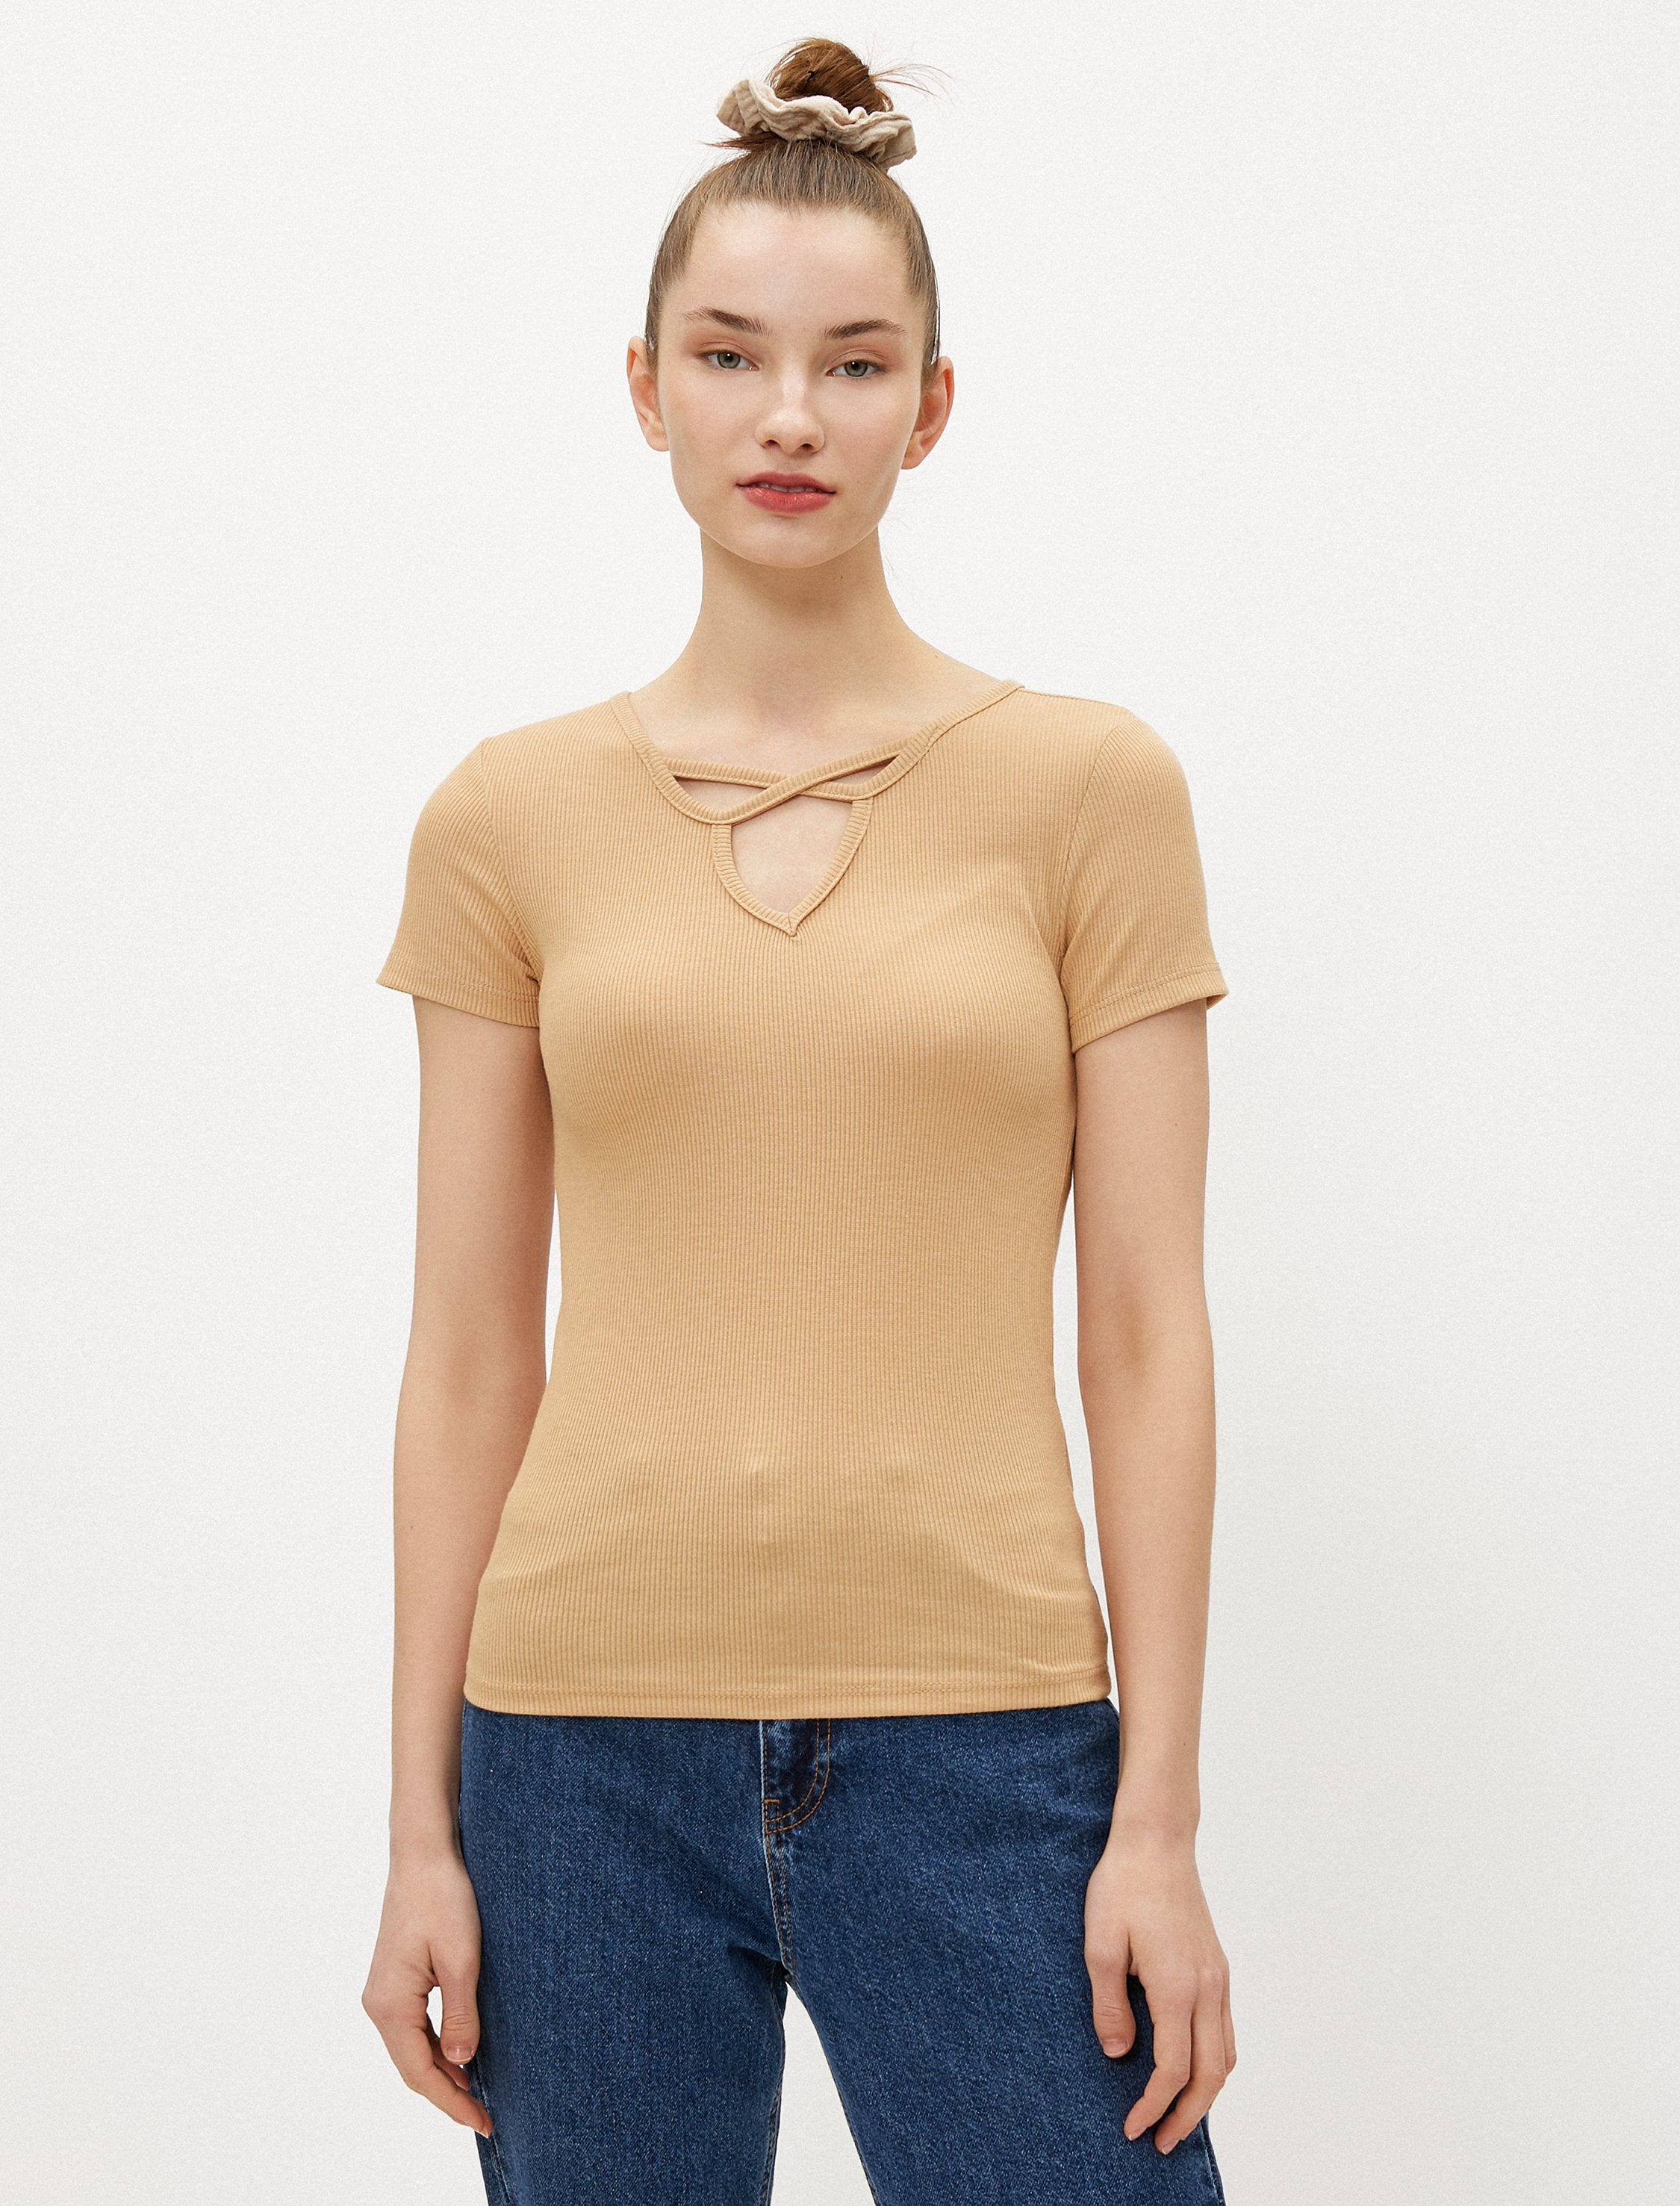 Lace Front Tee in Tan